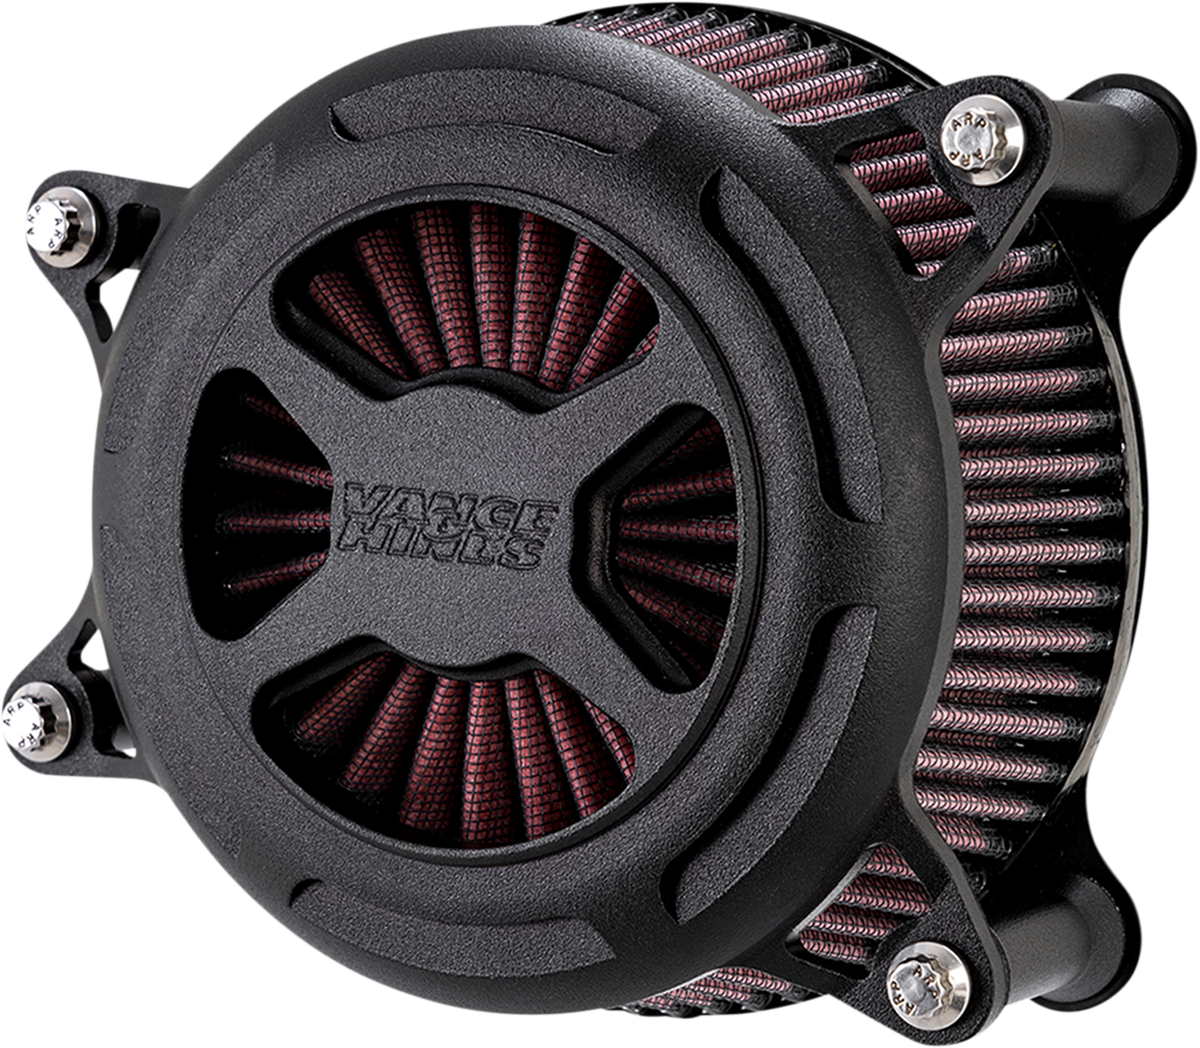 Vance & Hines VO2 X Air Filter Cleaner Kit 2017-2021 Harley Softail Touring FLHX